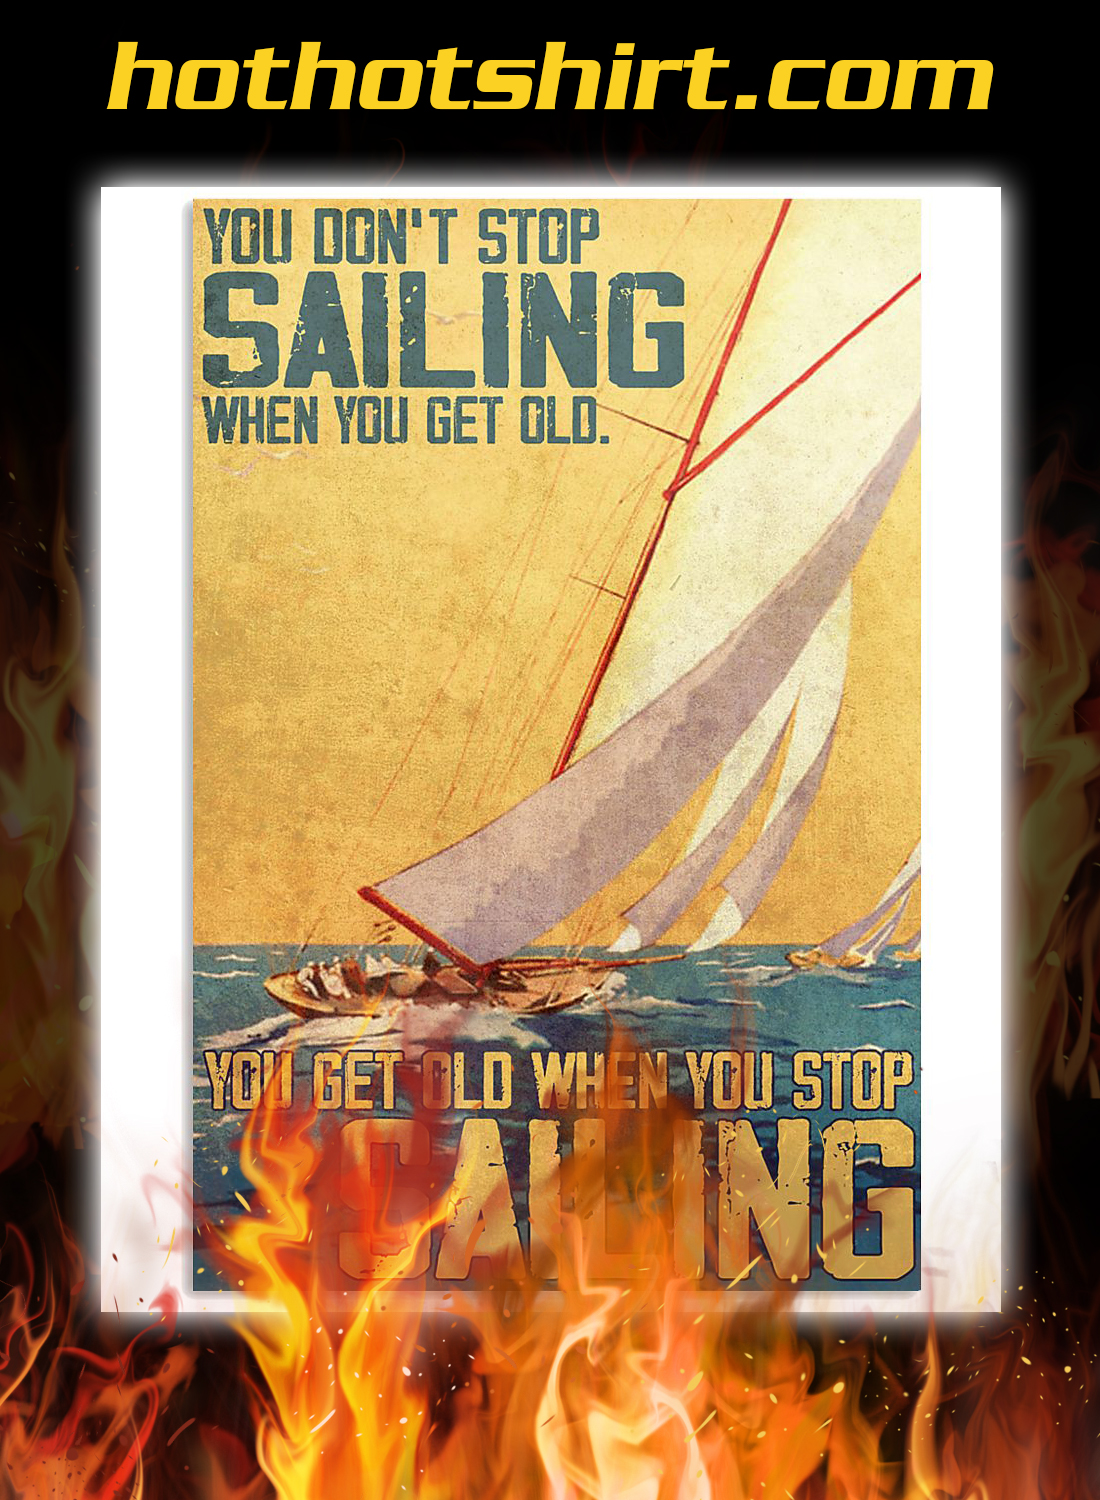 You don't stop sailing when you get old you get old when you stop sailing poster - A3